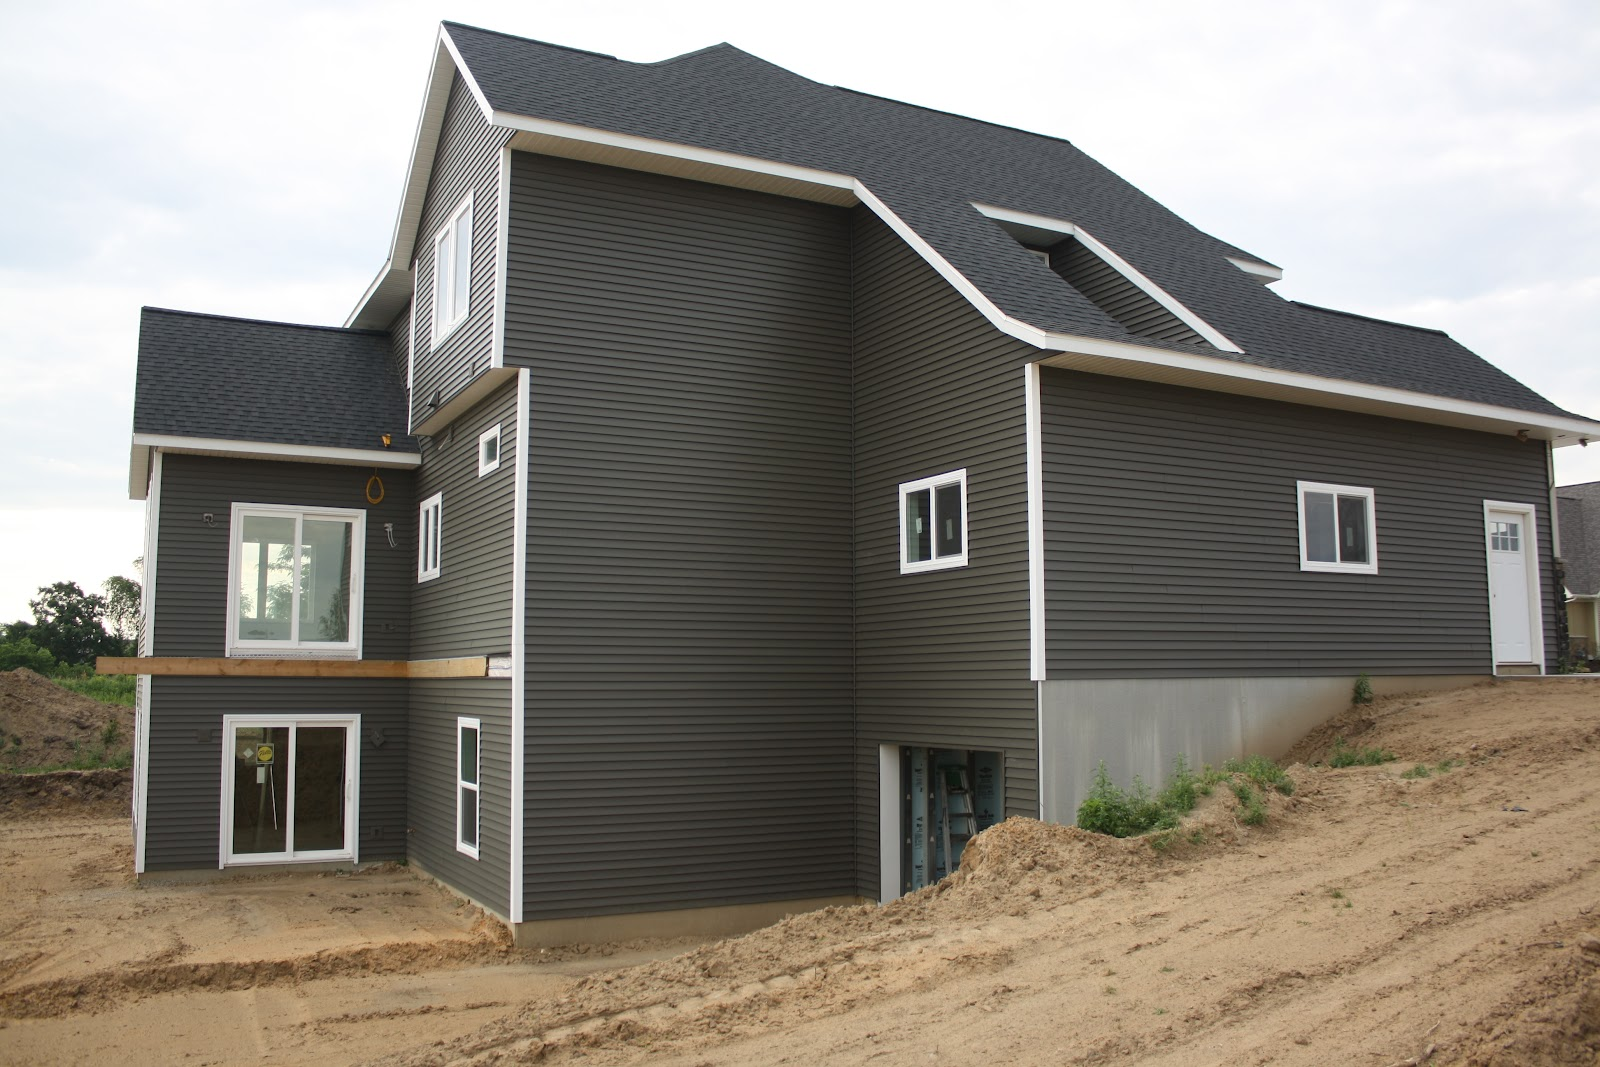 House on tufton the build exterior stone siding and for House siding designs